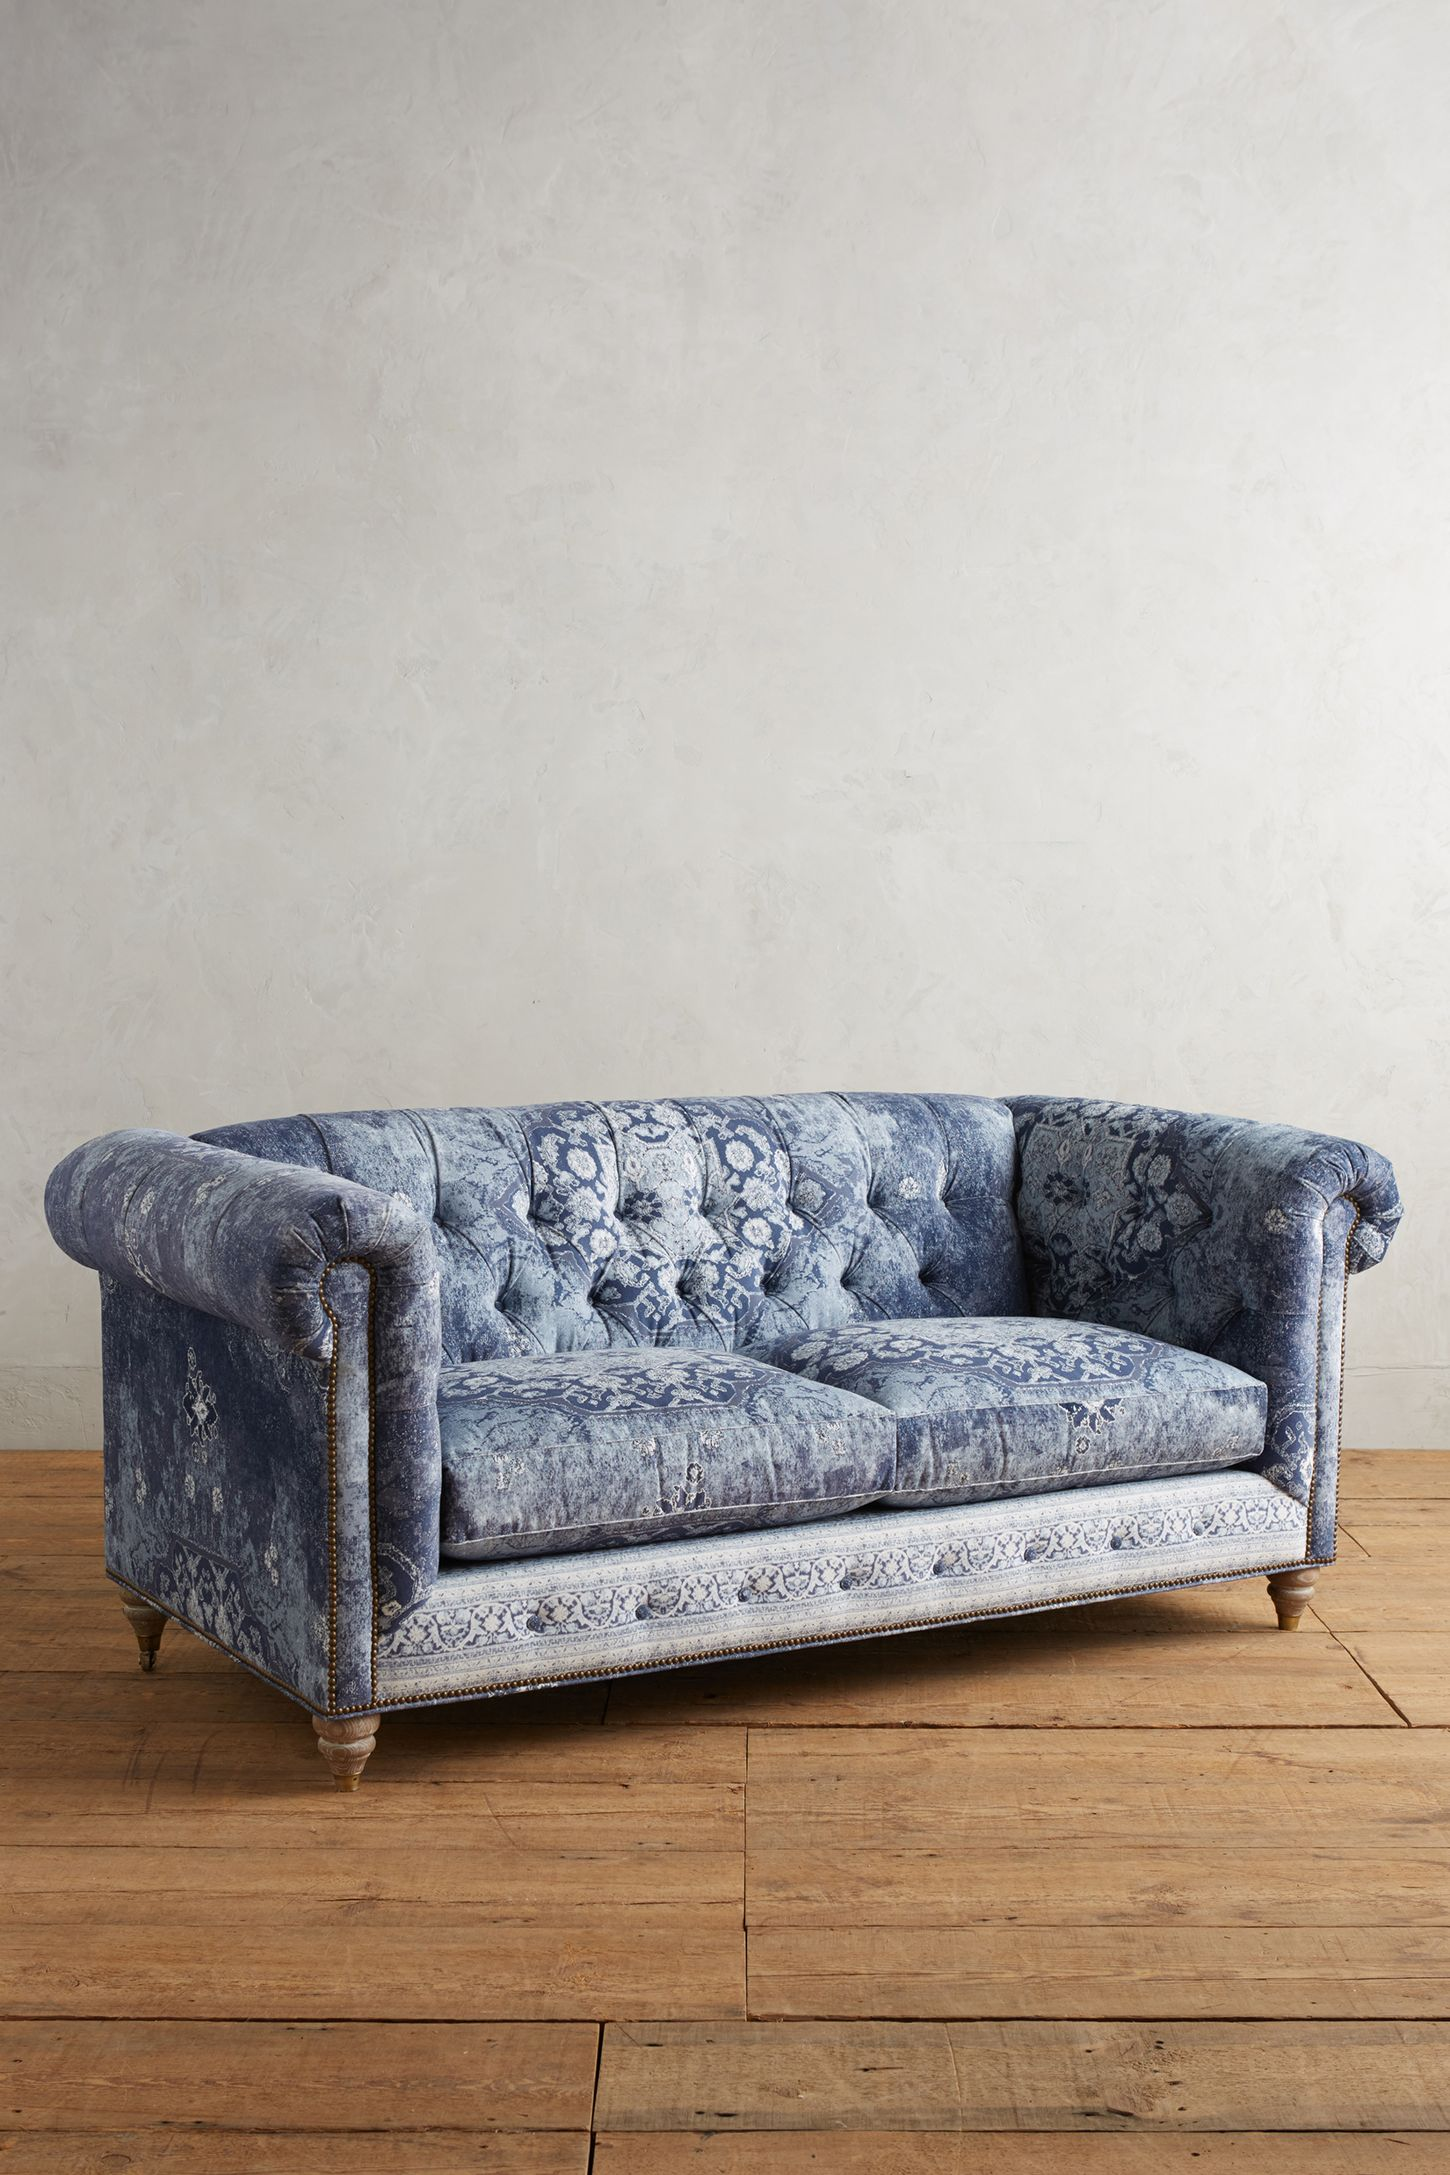 Anthropologie Sofa Blue Sofas Anthropologie Thesofa